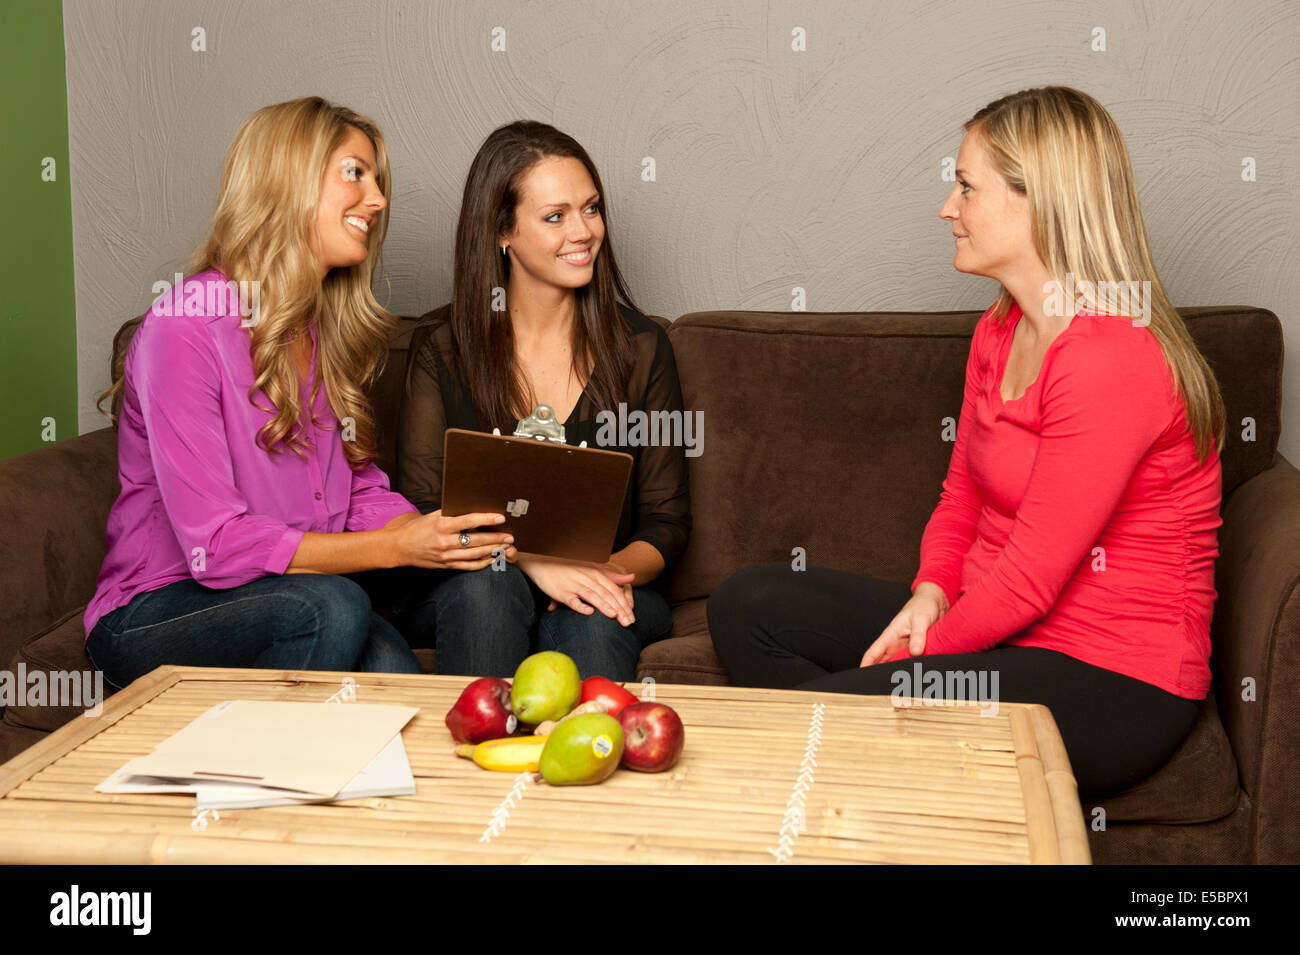 A pair of nutritionist consult a pregnant female on a couch. Stock Photo